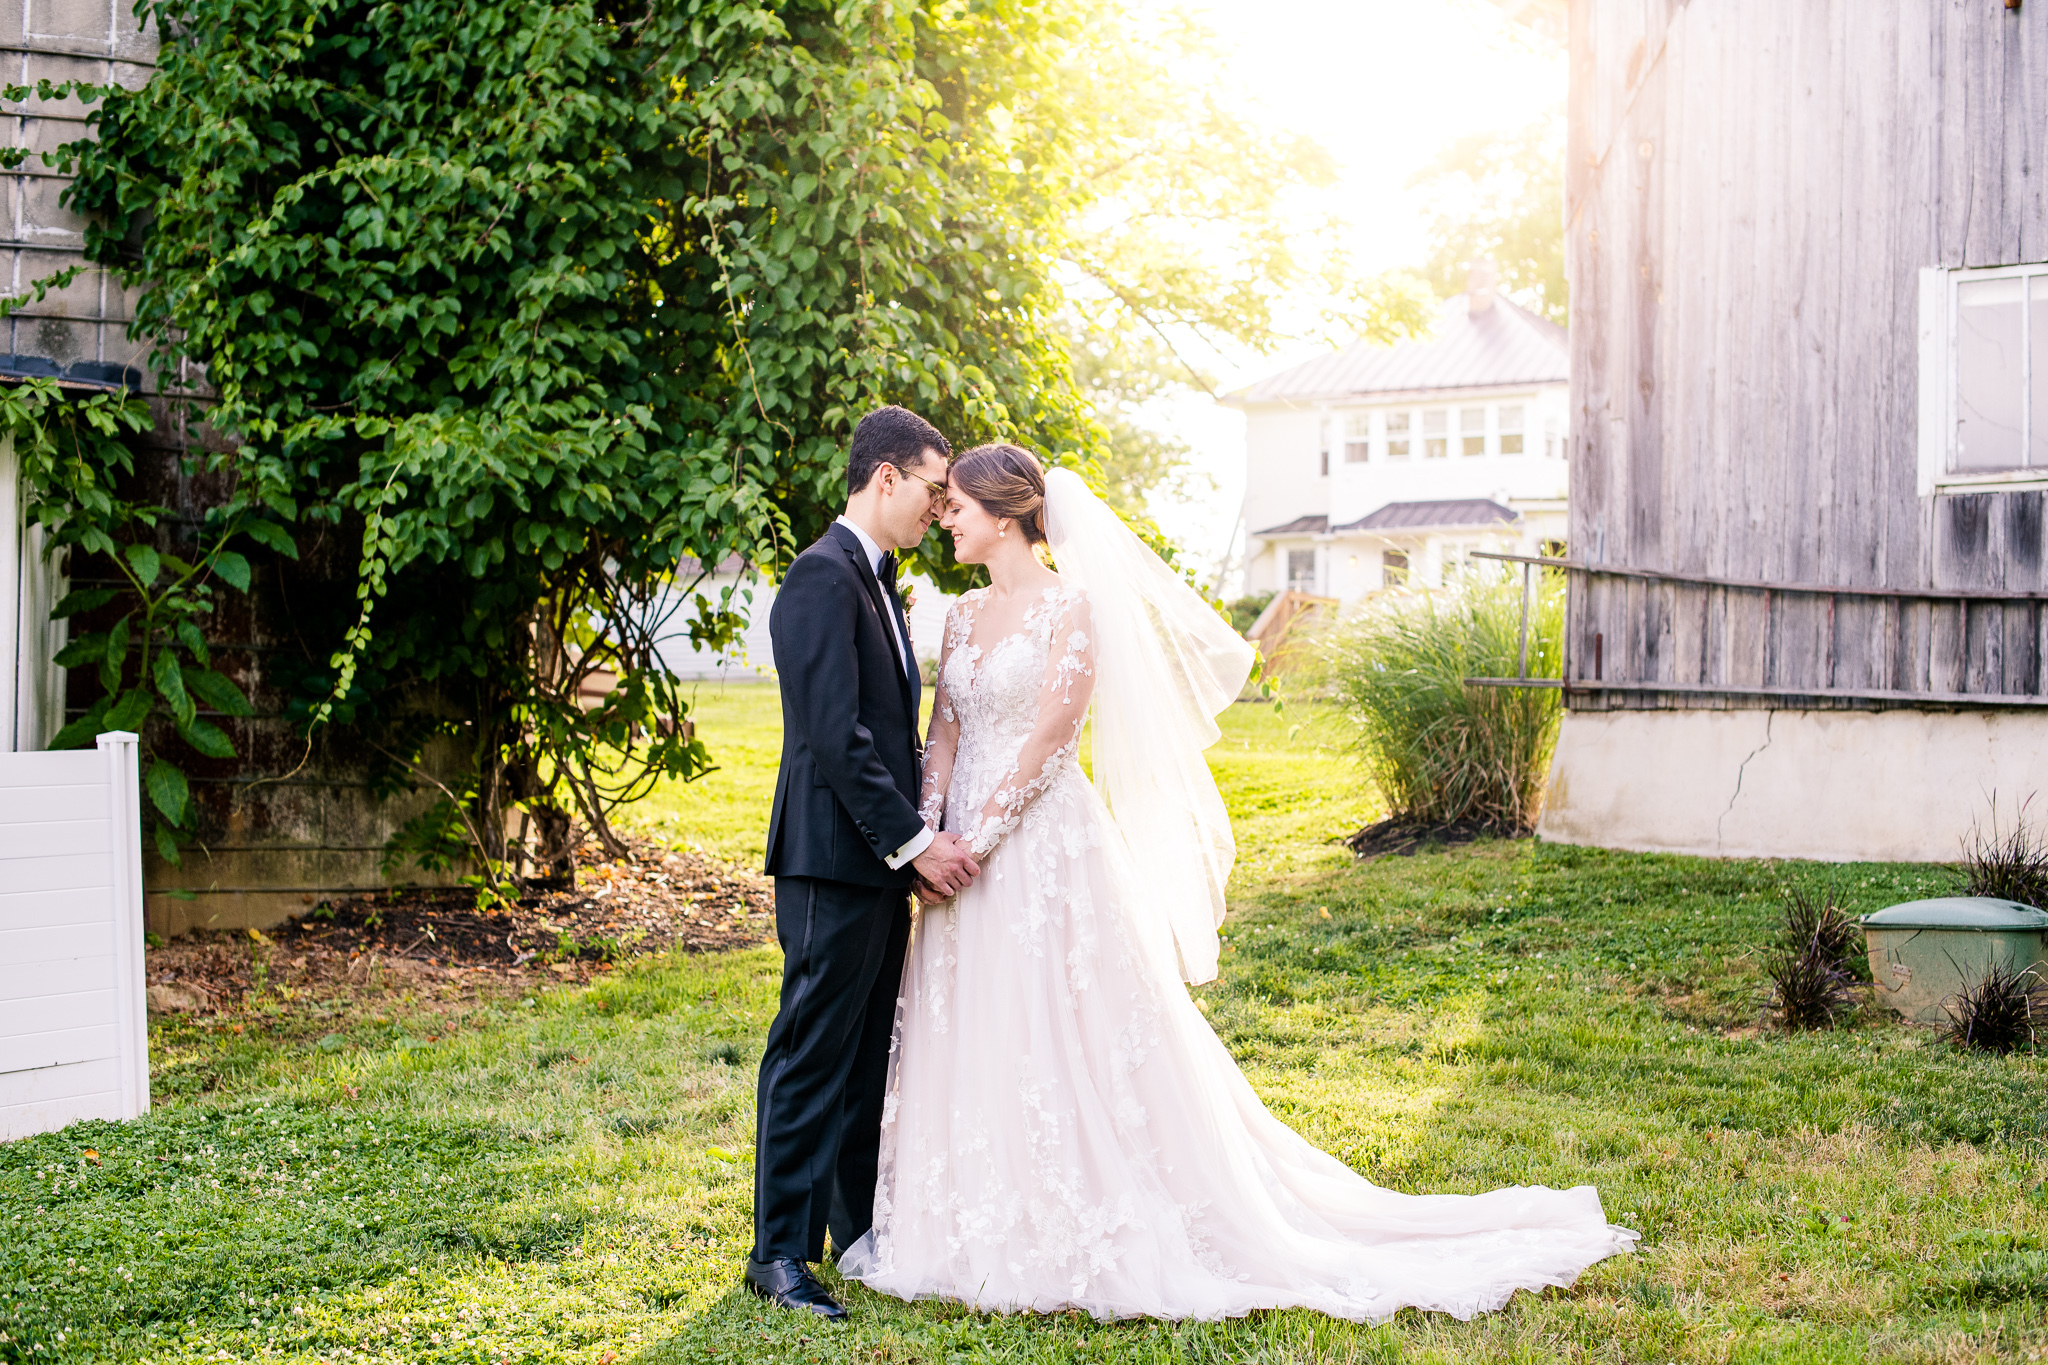 A bride and groom hold hands and lean their foreheads together during golden hour at The Barns at Hamilton Station Vineyard in Leesburg, Northern Virginia